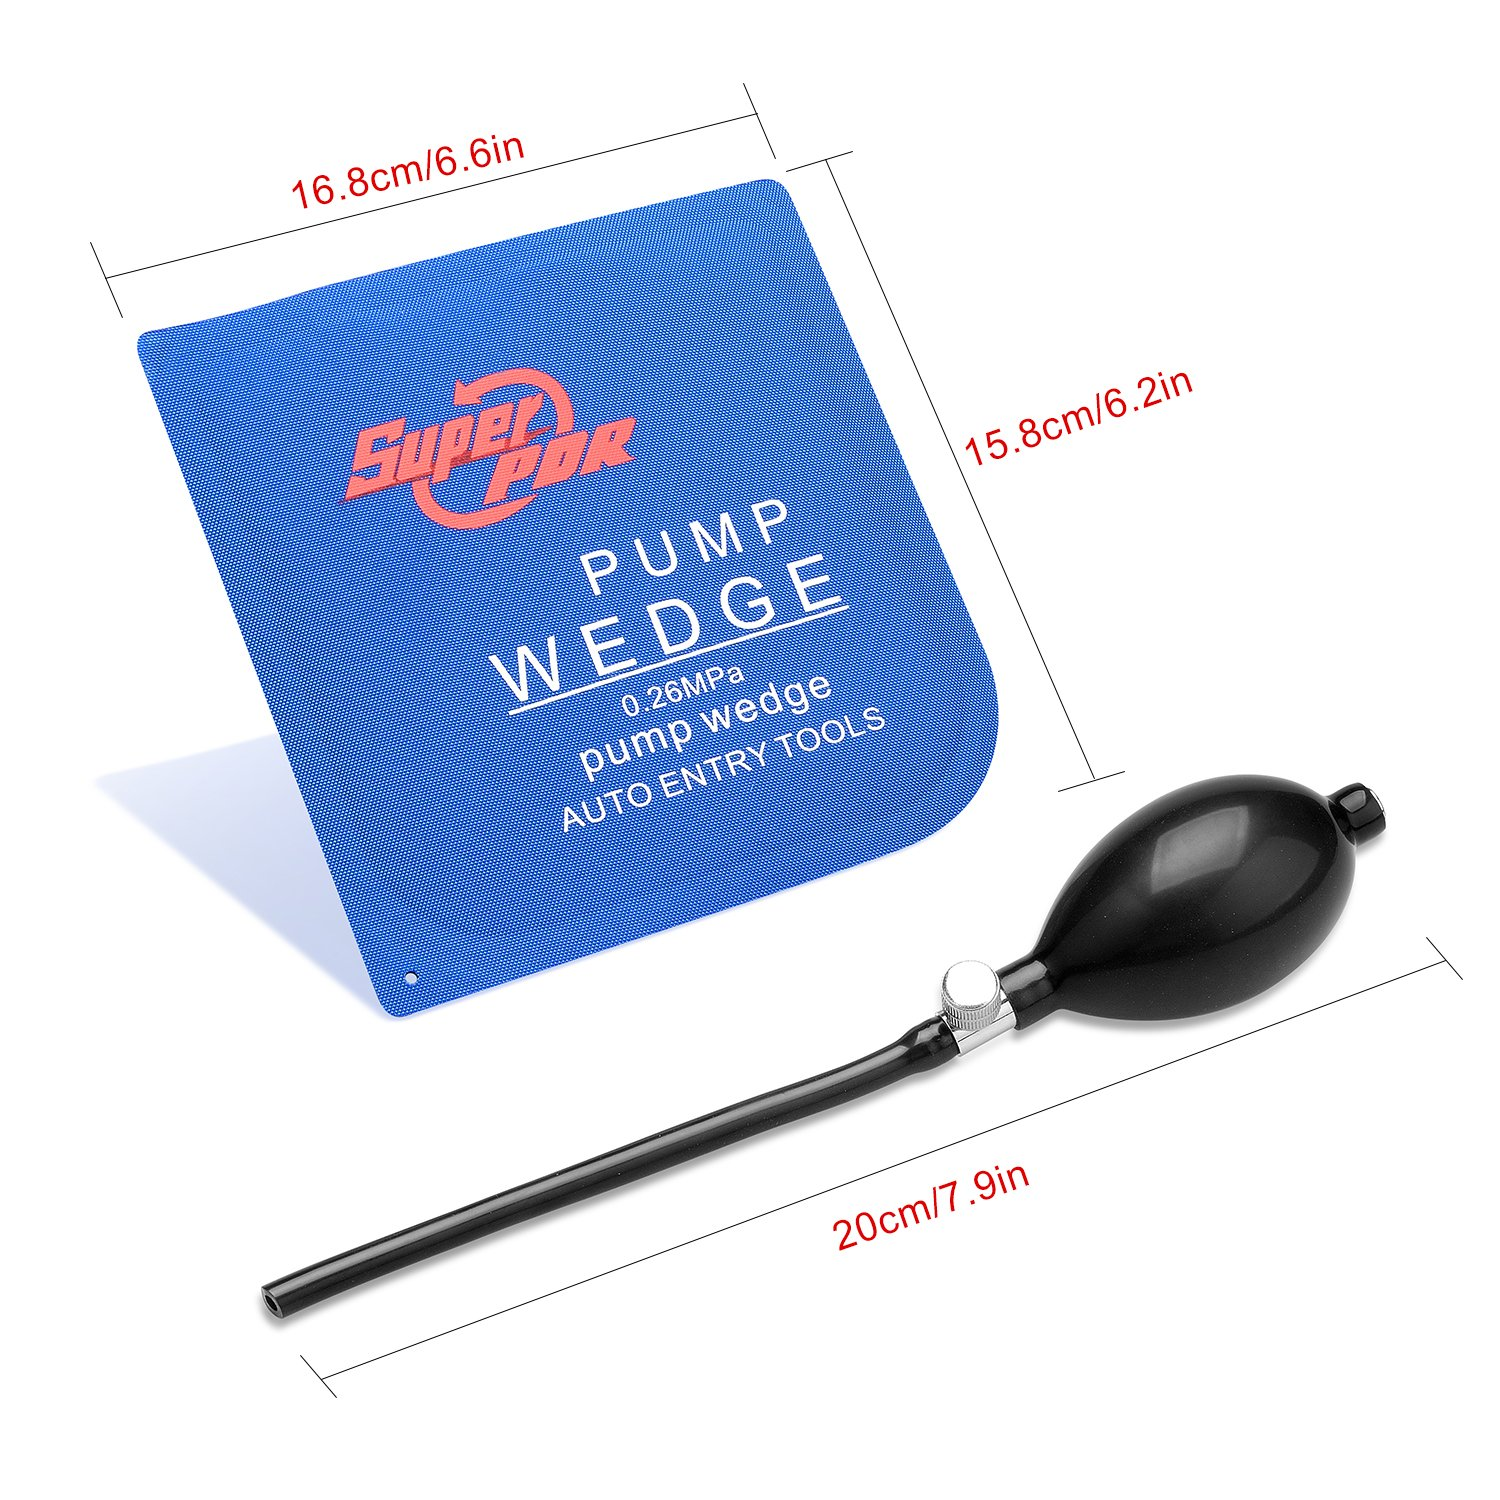 Super PDR 3Pcs Air Wedge Alignment Tool Inflatable Shim Cushioned Powerful Hand Tools for Auto Repair Home Universal Use by Super PDR (Image #2)